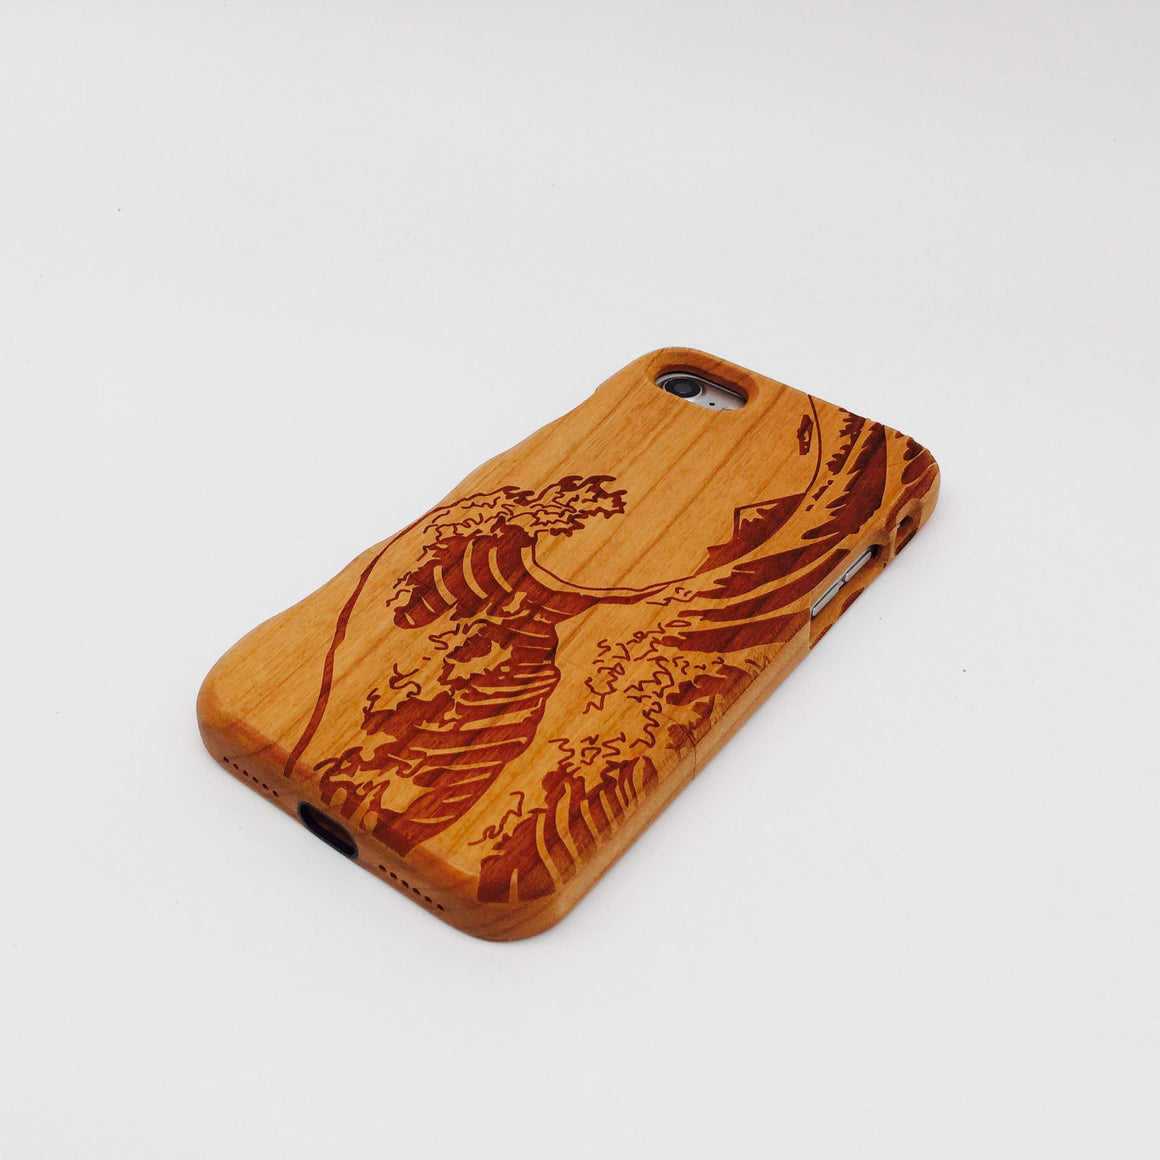 The great wave | iPhone 7 / iPhone 7 Plus - Wood Case Australia